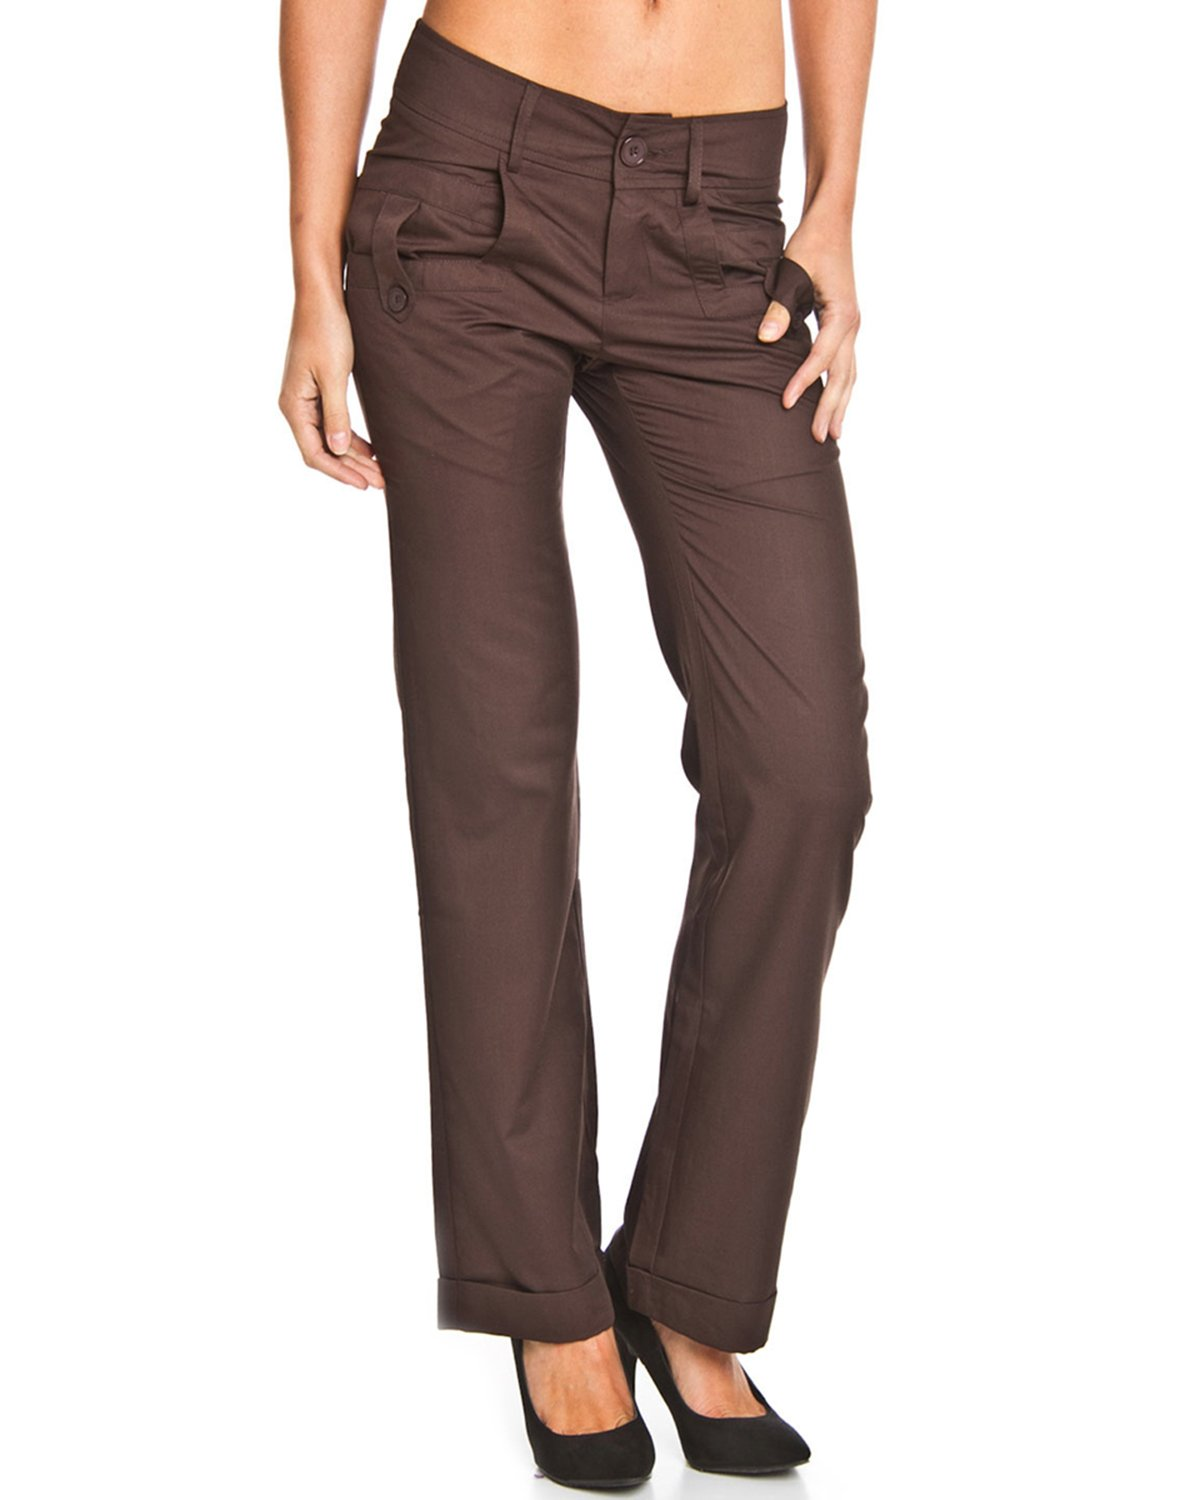 Style NY Women's Button Tab Skinny Fashion Pants MK227